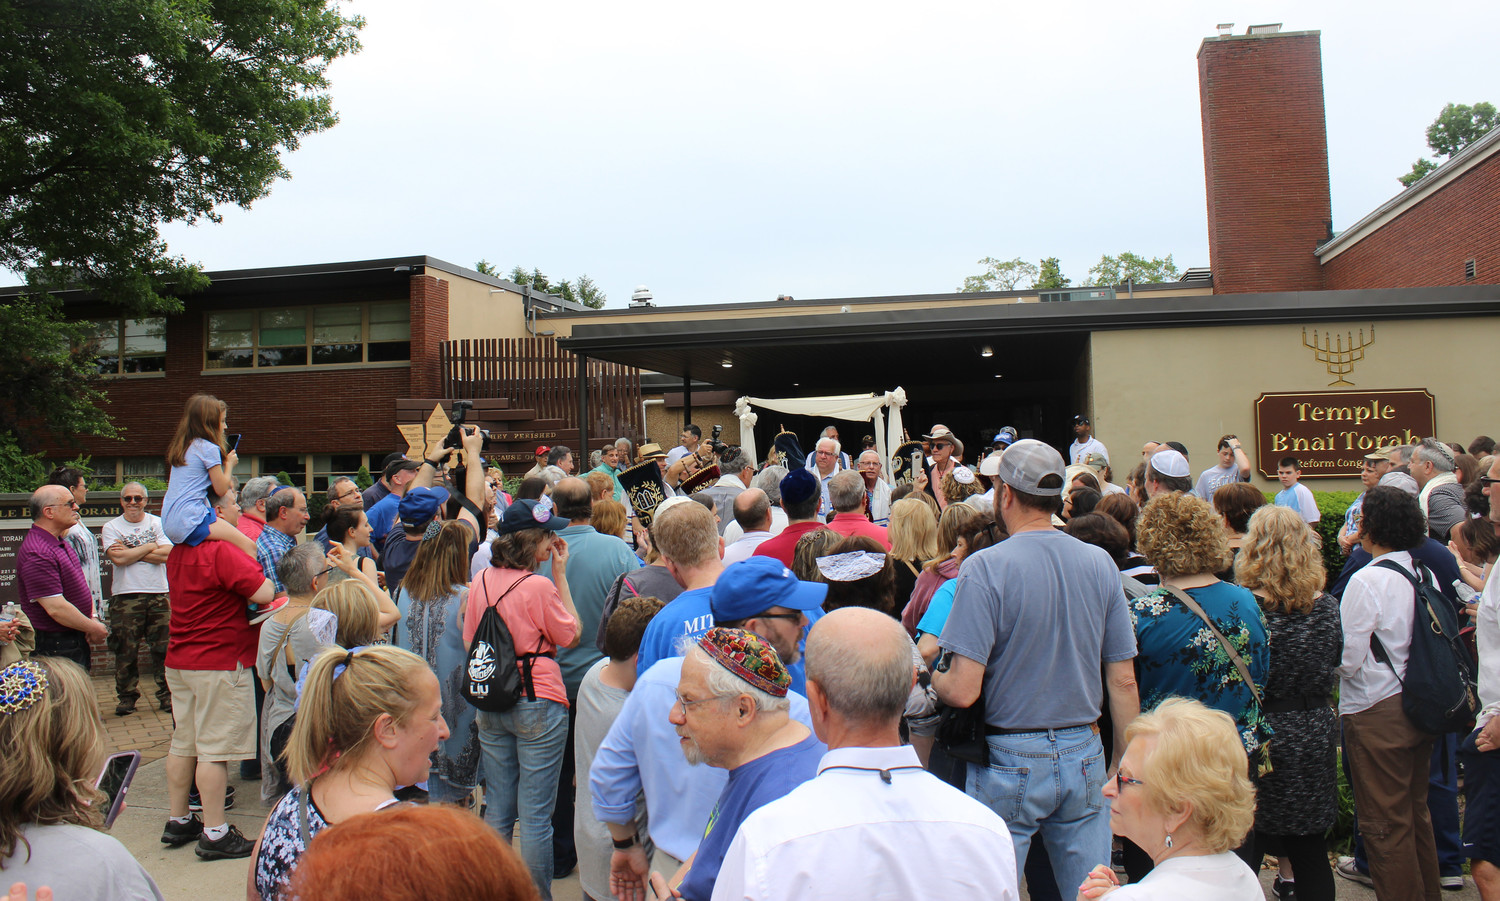 Temple Emanu-El closed its doors on June 10, after nearly 200 congregants marched 3.8 miles in the heat to Temple B'Nai Torah in Wantagh.